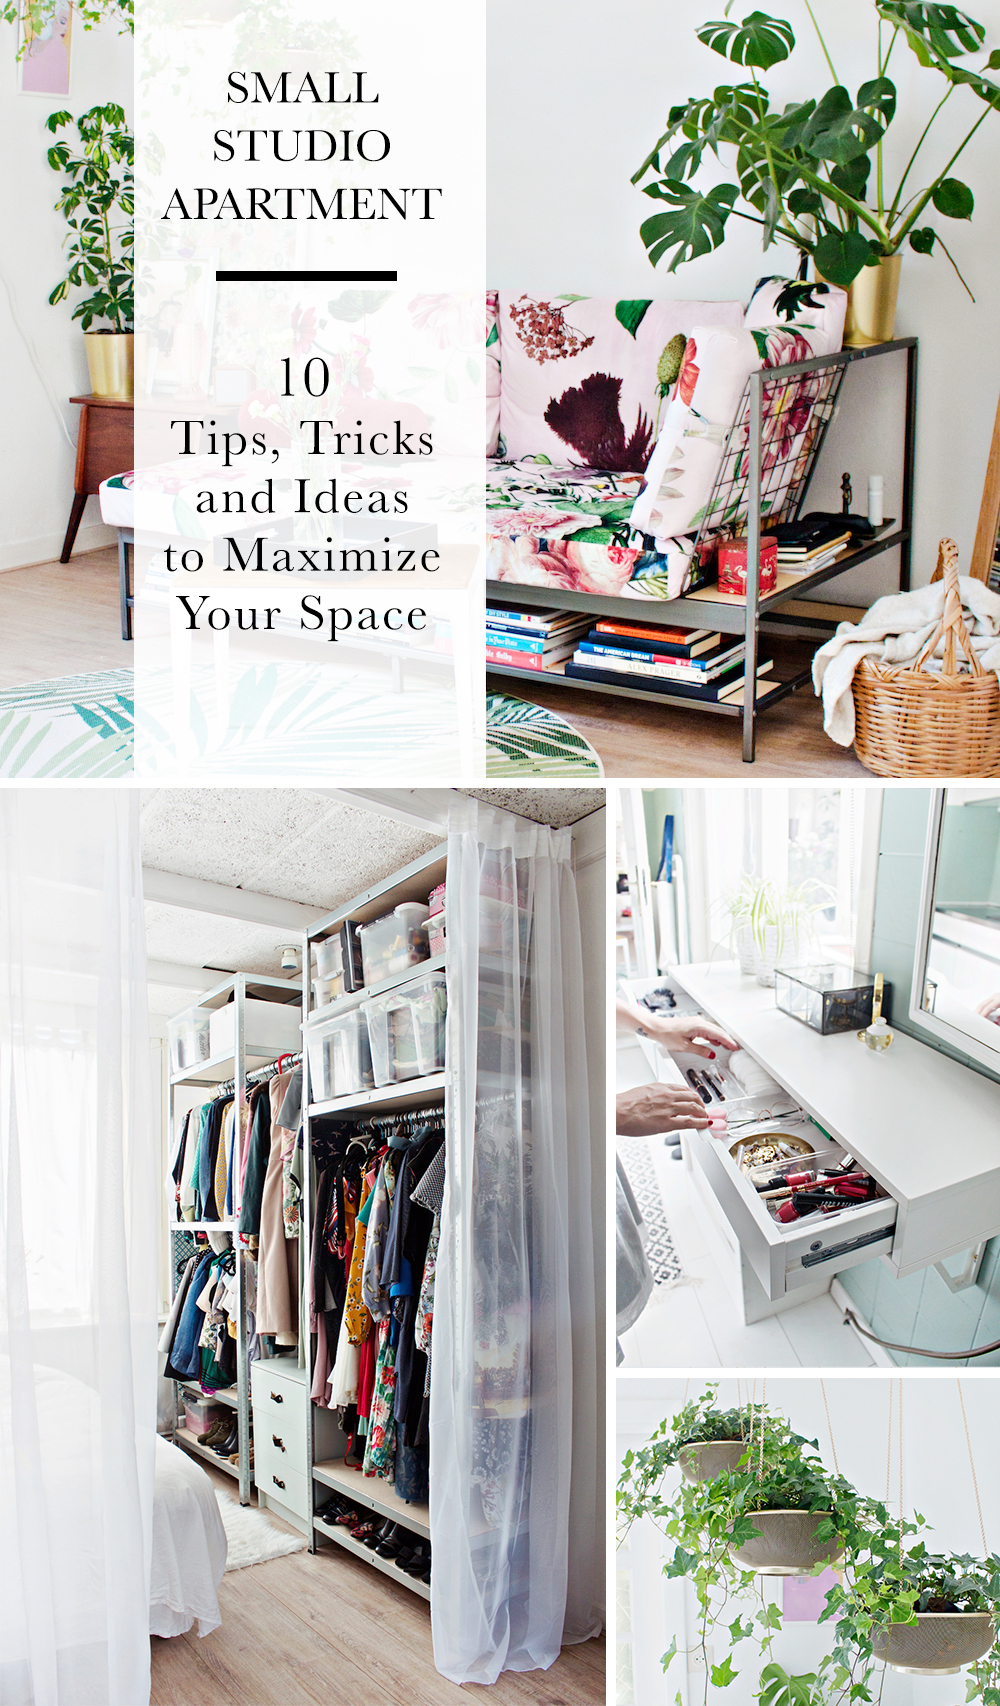 SMALL STUDIO APARTMENT | 10 Tips, Tricks and Ideas to